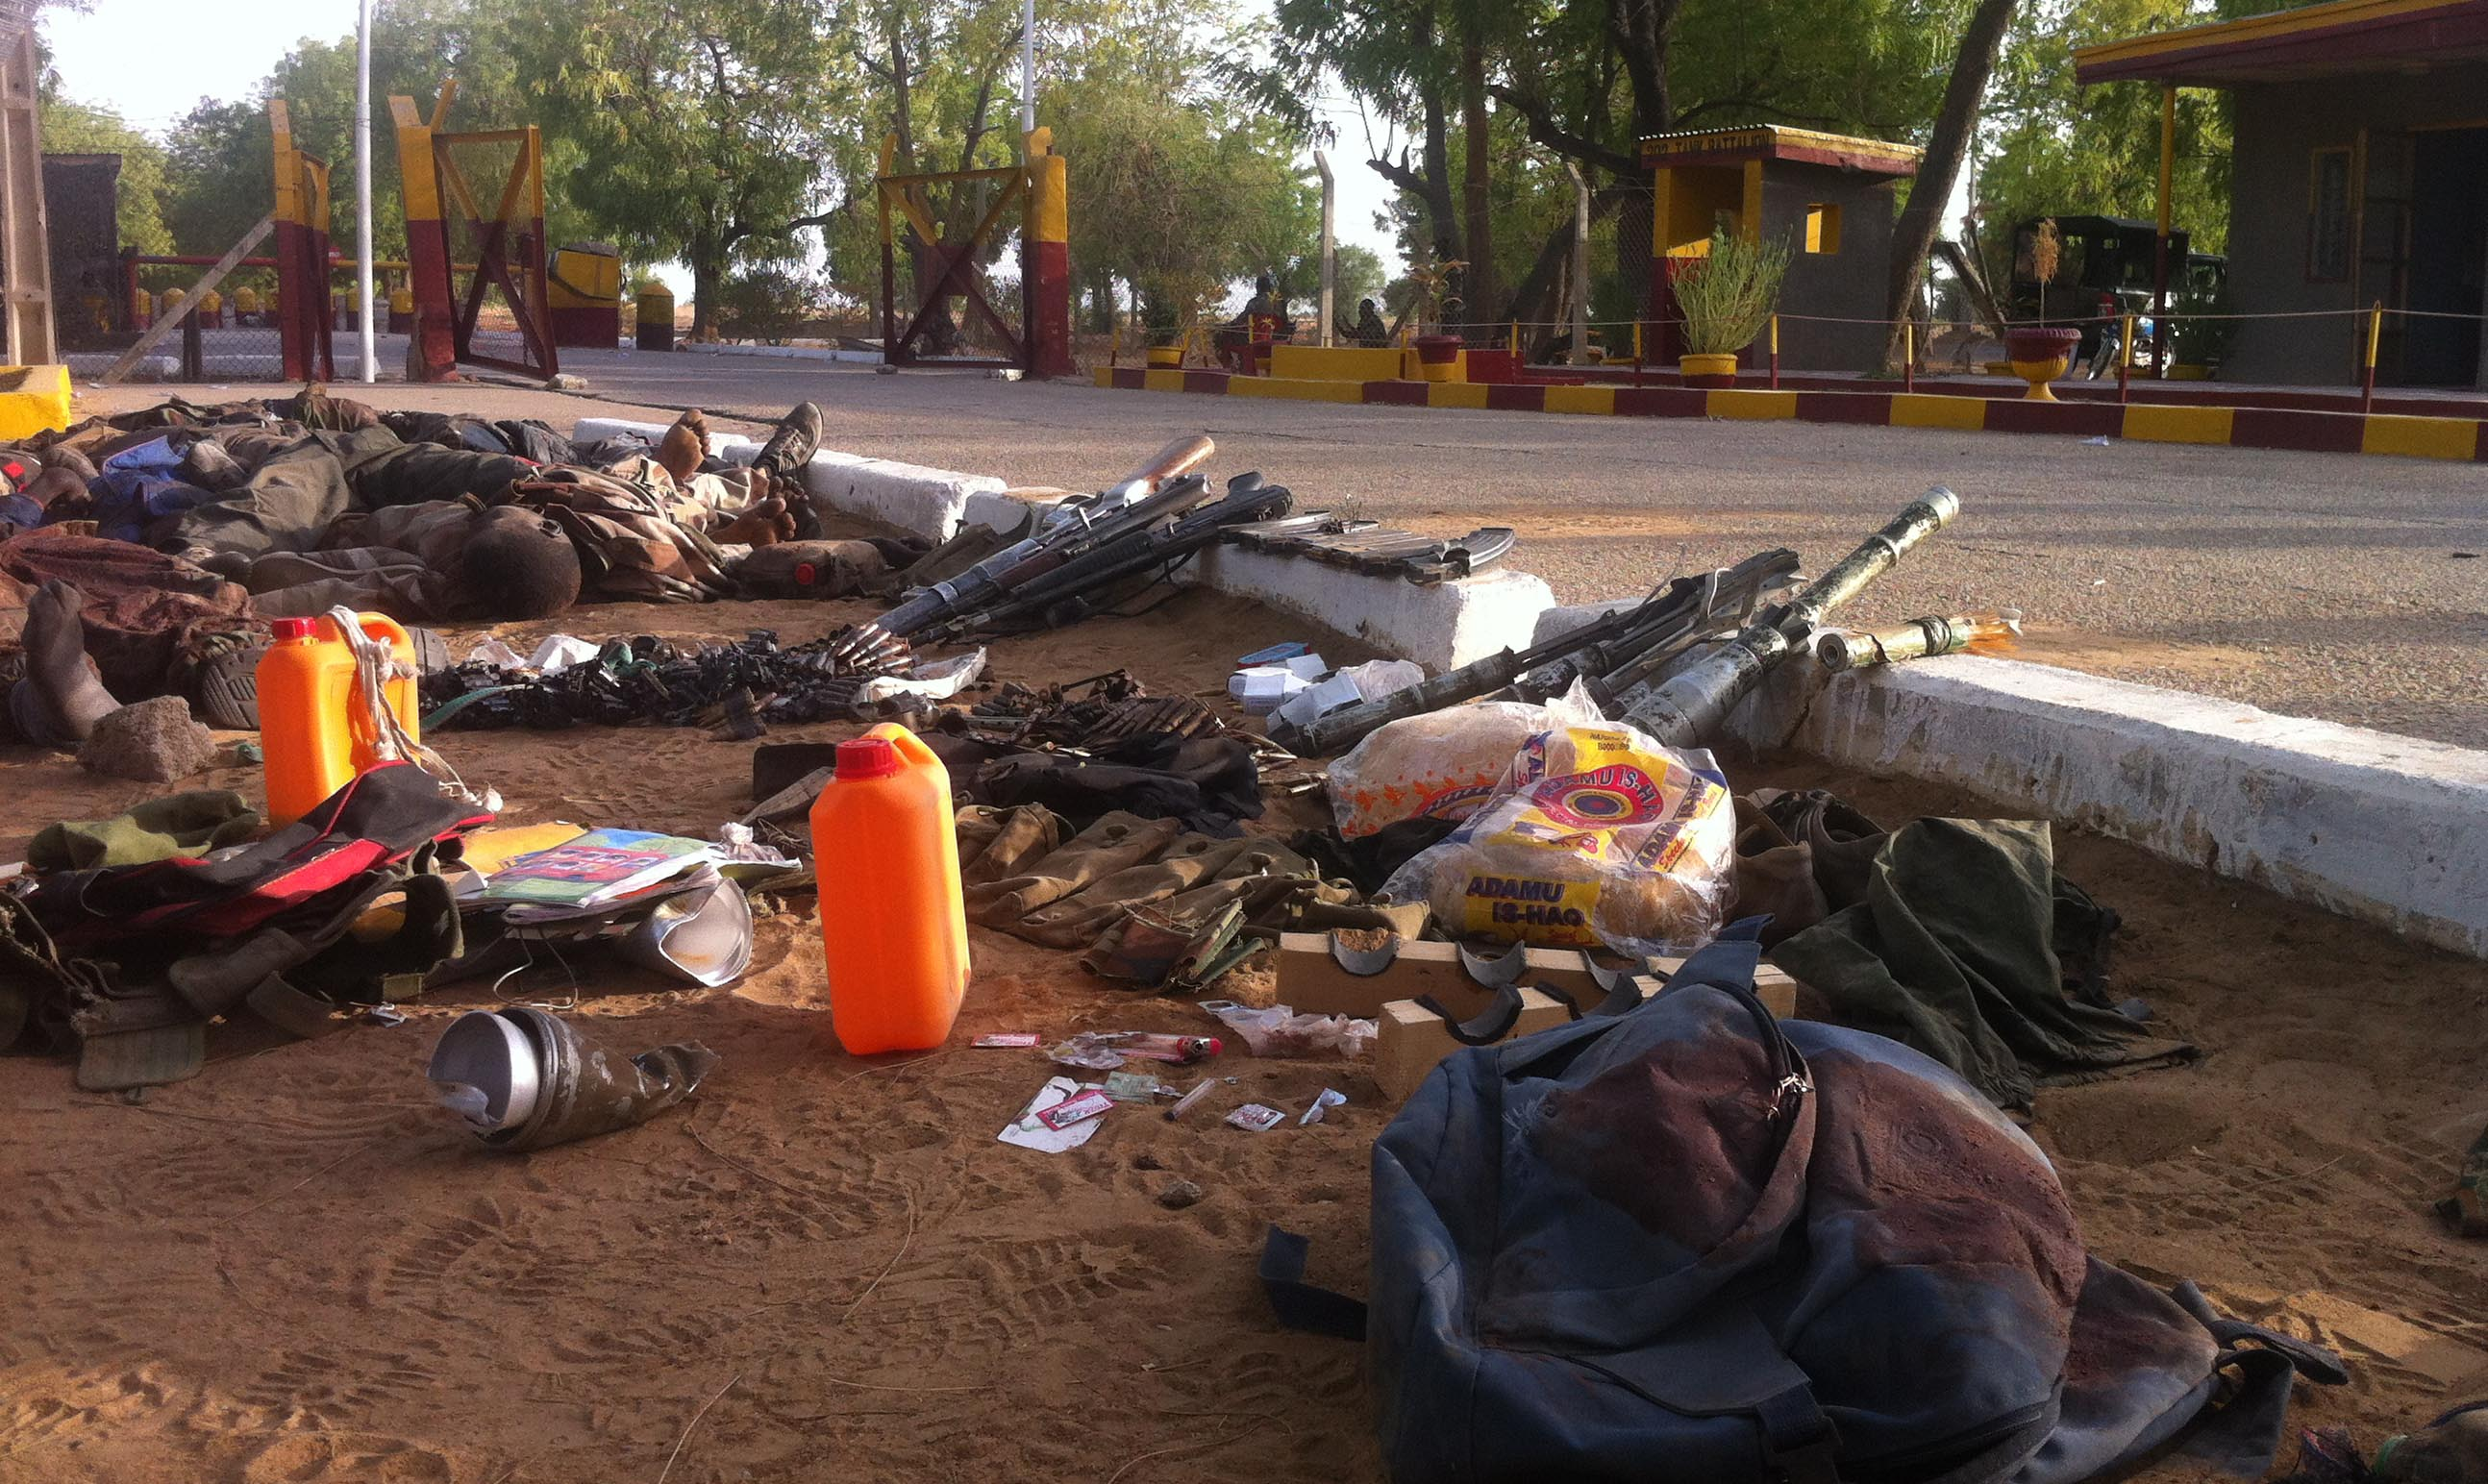 Over 200 Boko Haram fighters killed in Borno attack – The Eagle Online